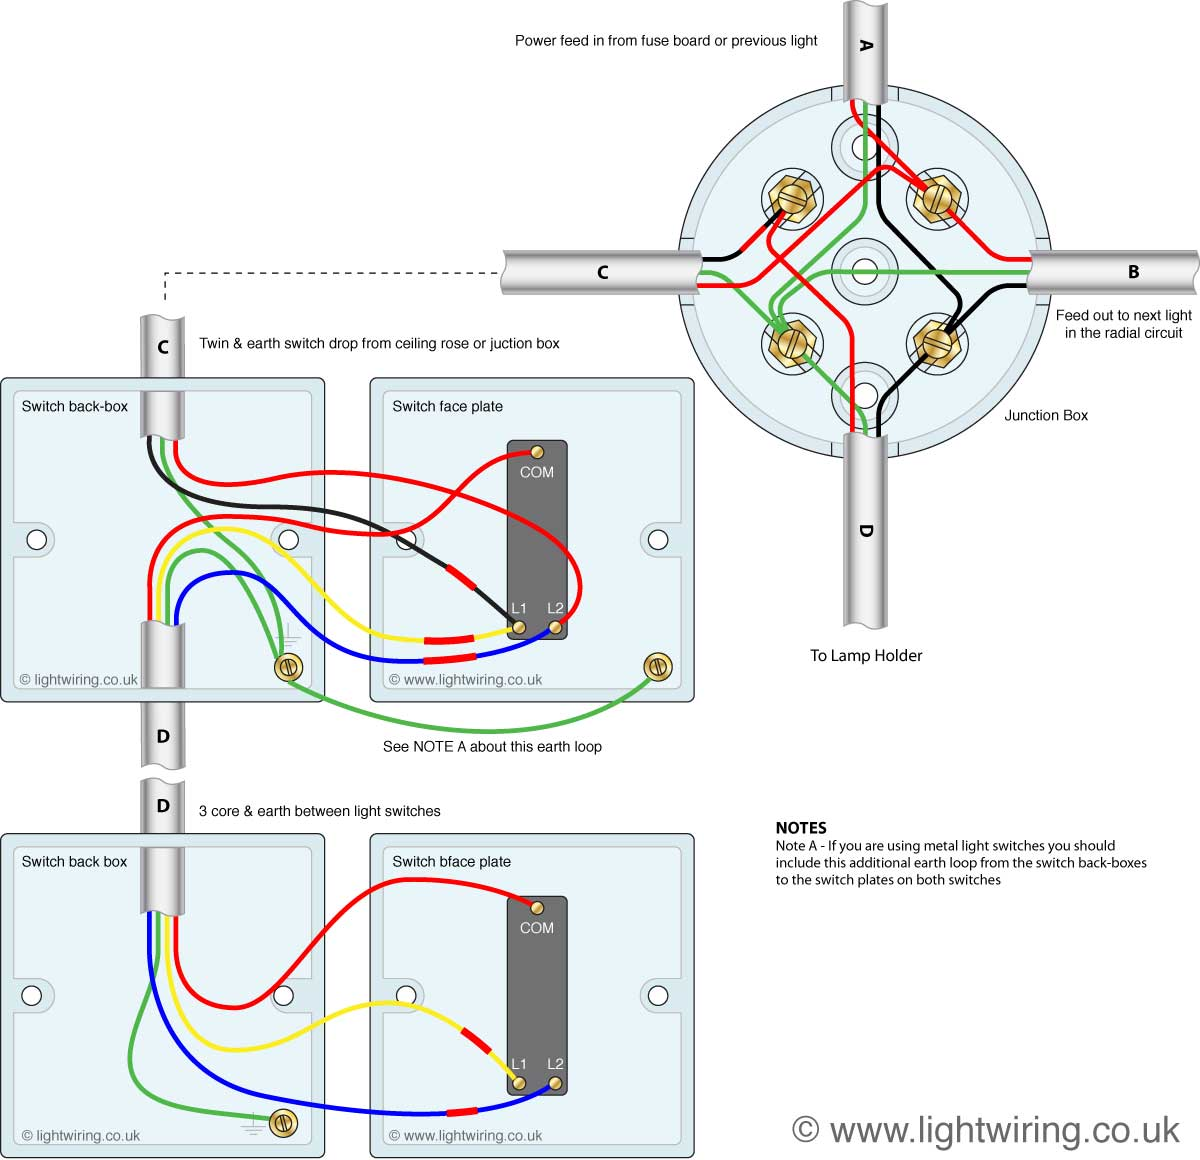 lighting wiring diagram light wiring rh lightwiring co uk lighting wiring diagram 2011 ford f650 lighting wiring diagram 2008 ezgo rxv